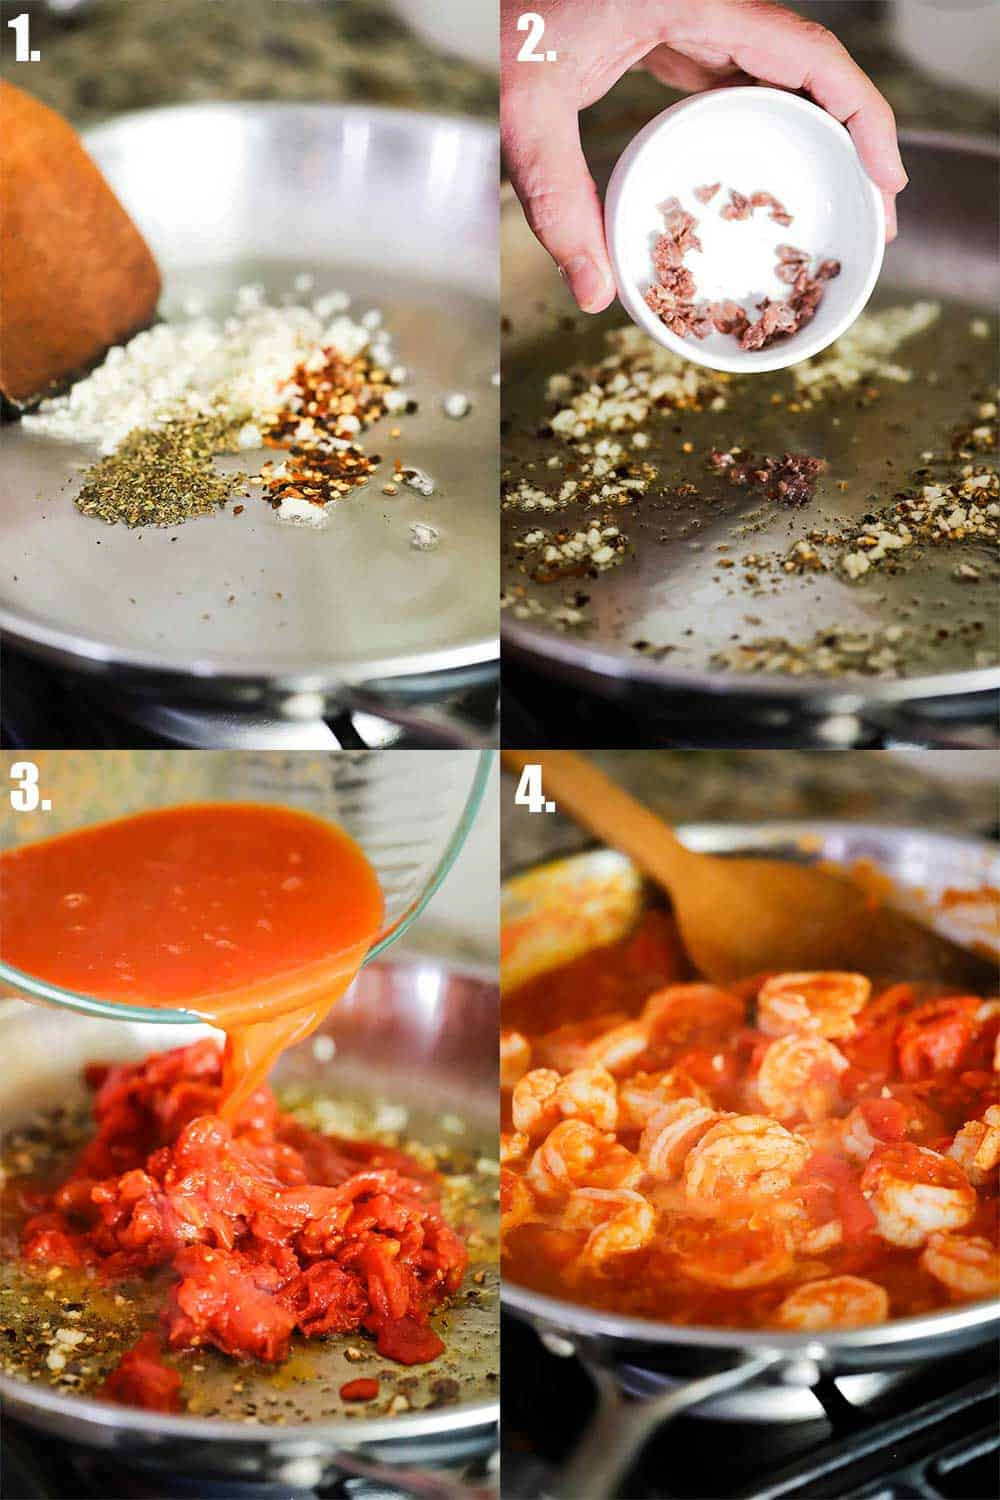 4 images of a large skillet on a stove. 1st image garlic, red pepper flakes and dried oregano. Next, chopped anchovies being dropped in. Next, tomato sauce and tomatoes being dropped in from a bow;. And last shrimp simmering in the sauce.